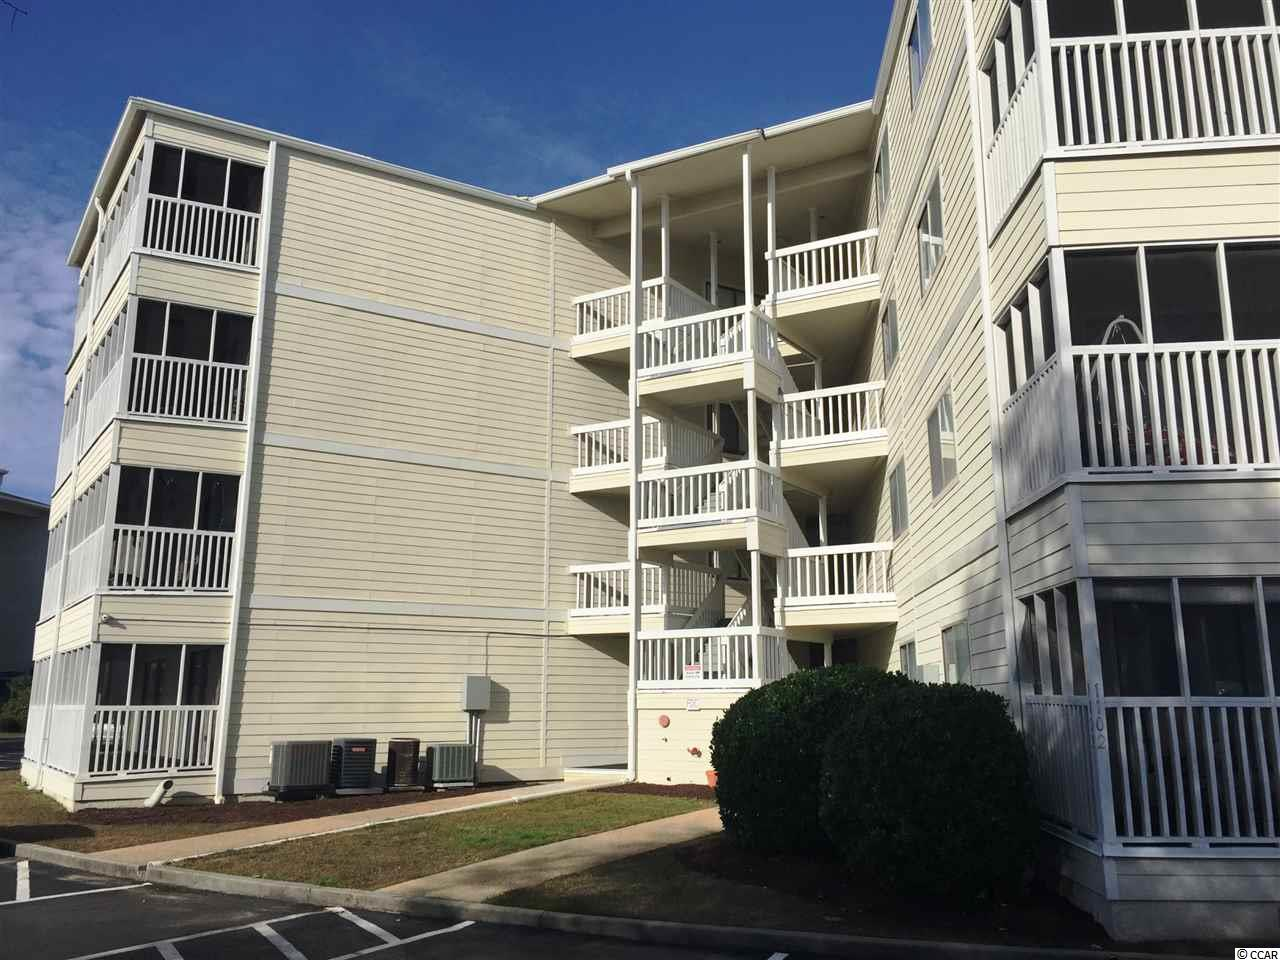 Cute one bedroom with 1 1/2 bath. Marble entrance hallway, and kitchen island. Great second home or income property. Quiet little neighborhood close to the water. Long term rentals allowed. Owner dogs under 30 pounds and motorcycles allowed! Call for your appointment. If your not in town we can do a video tour for you. Find your place at the beach!